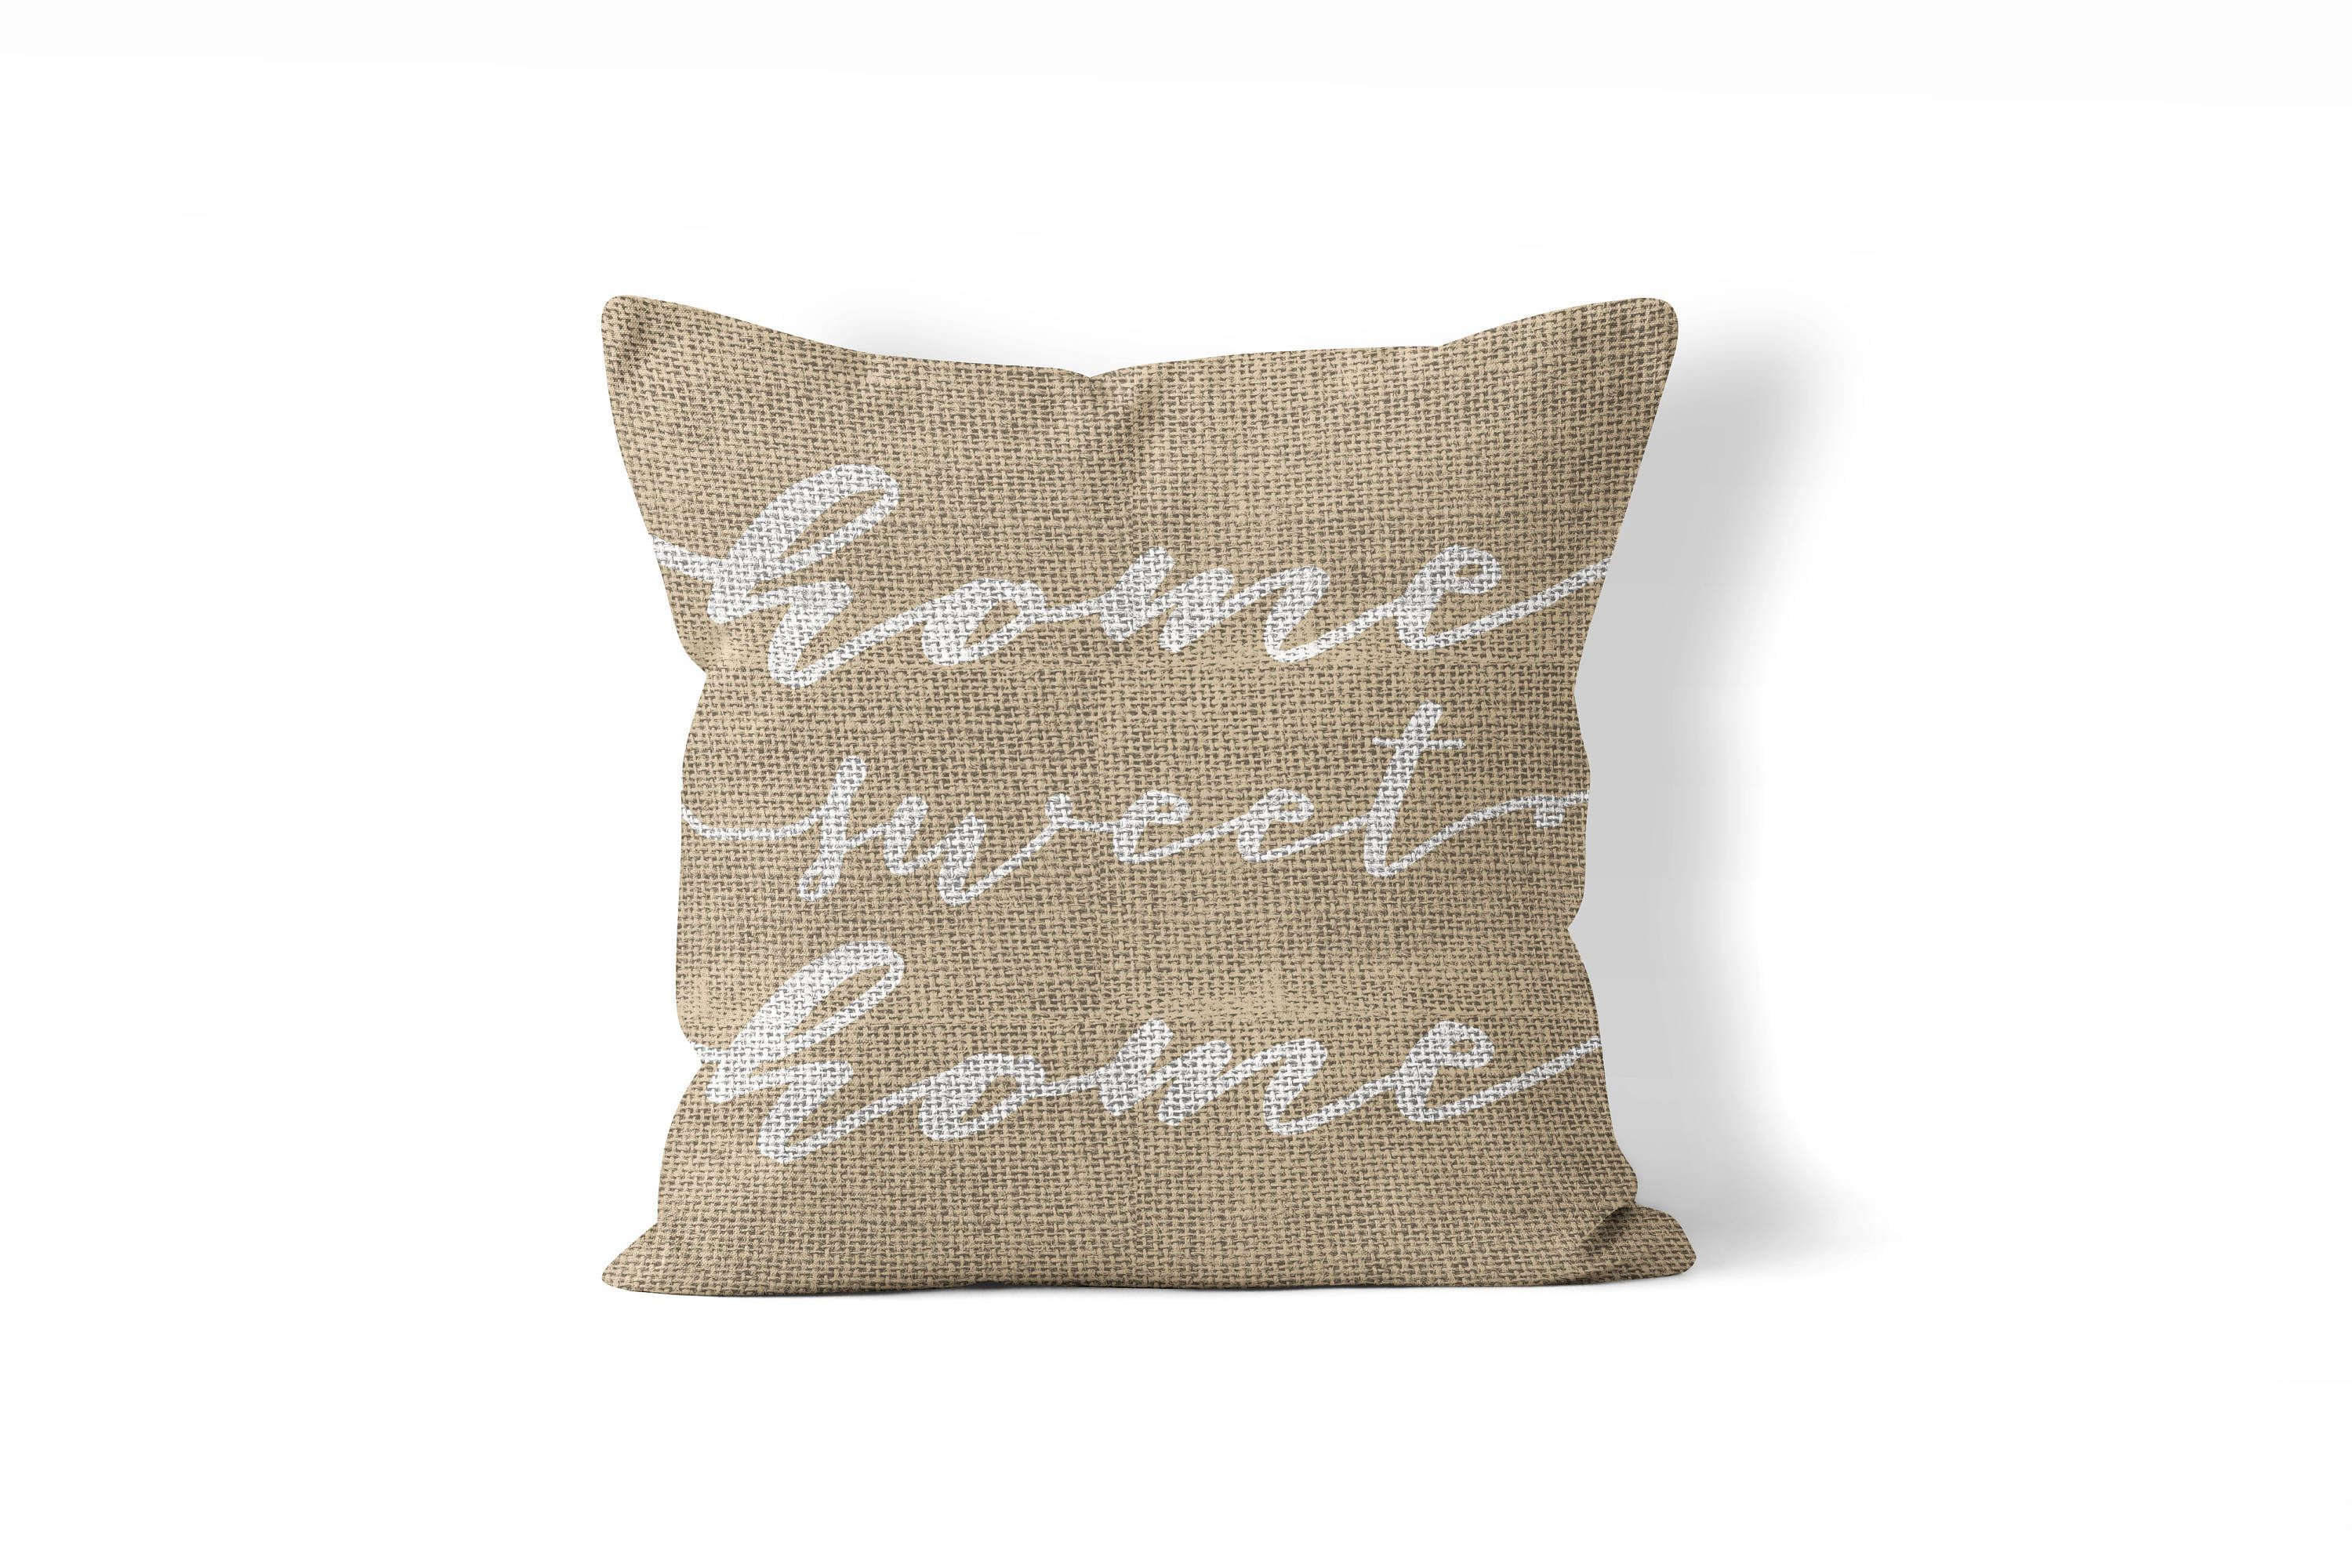 Give this a look quote pillow cover 20x20 in burlap